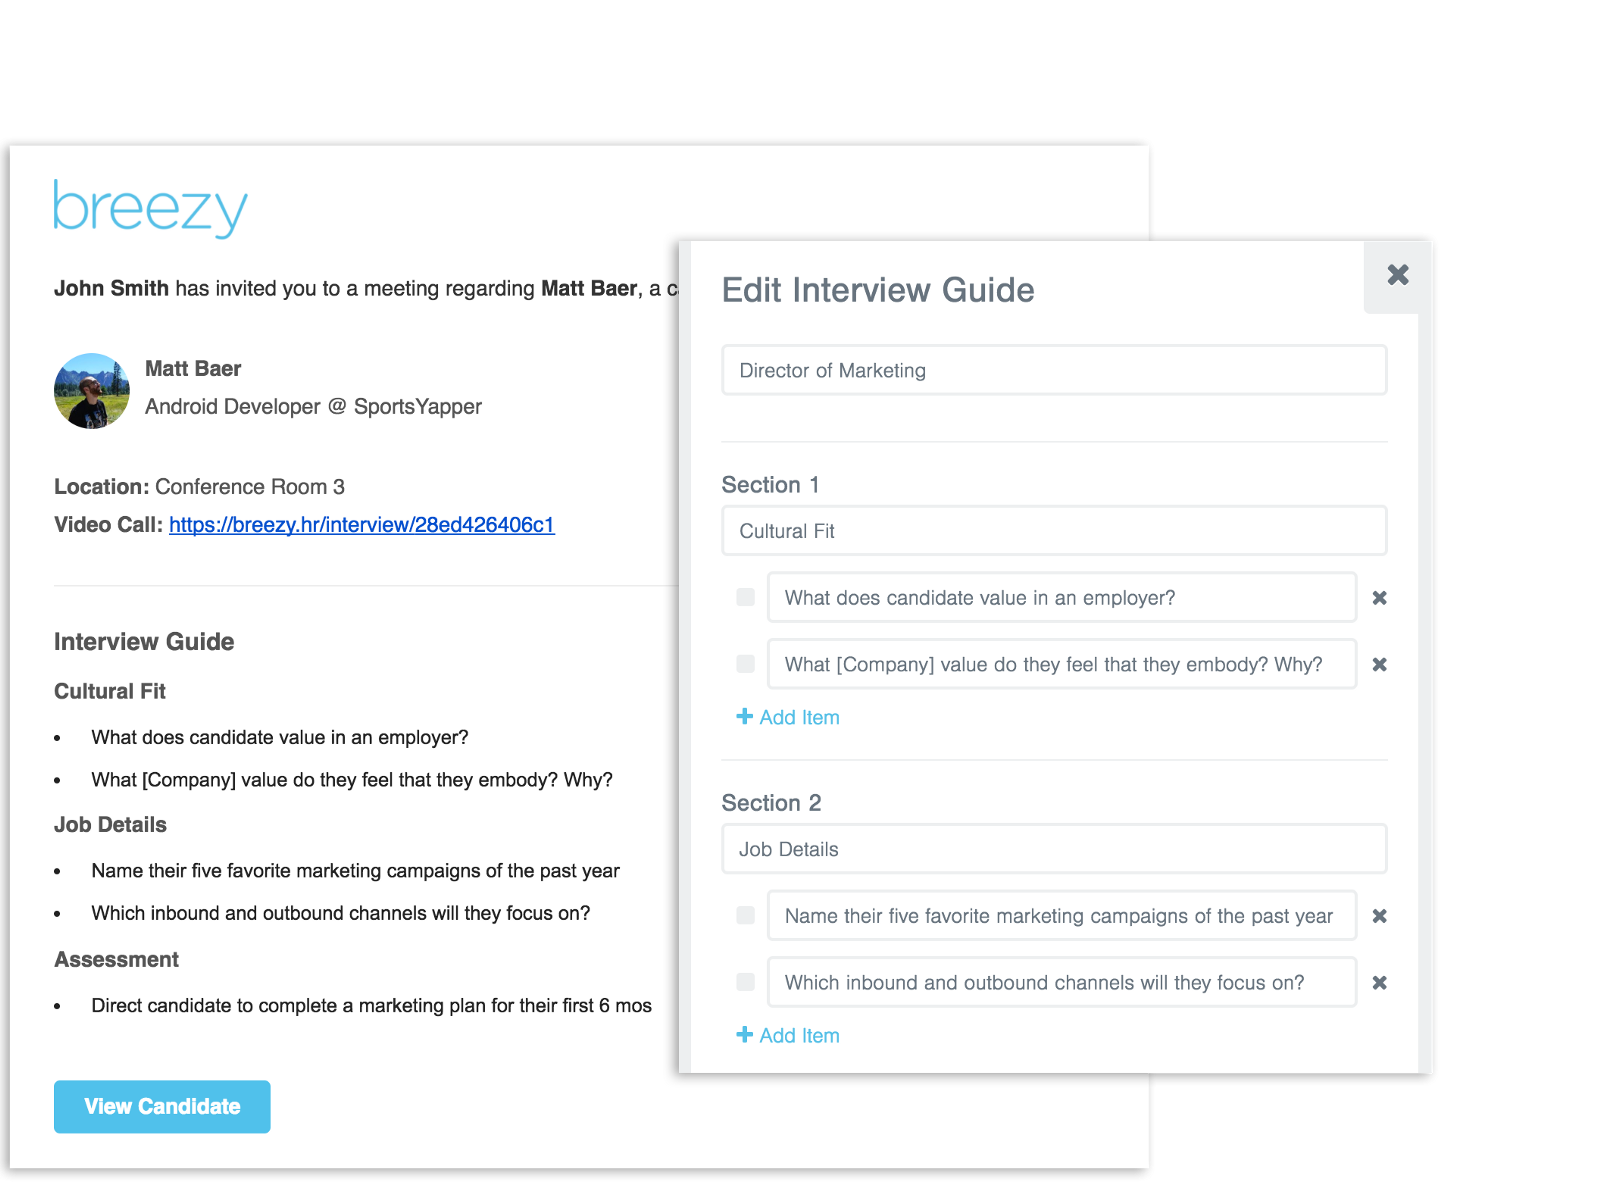 breezy interview guide